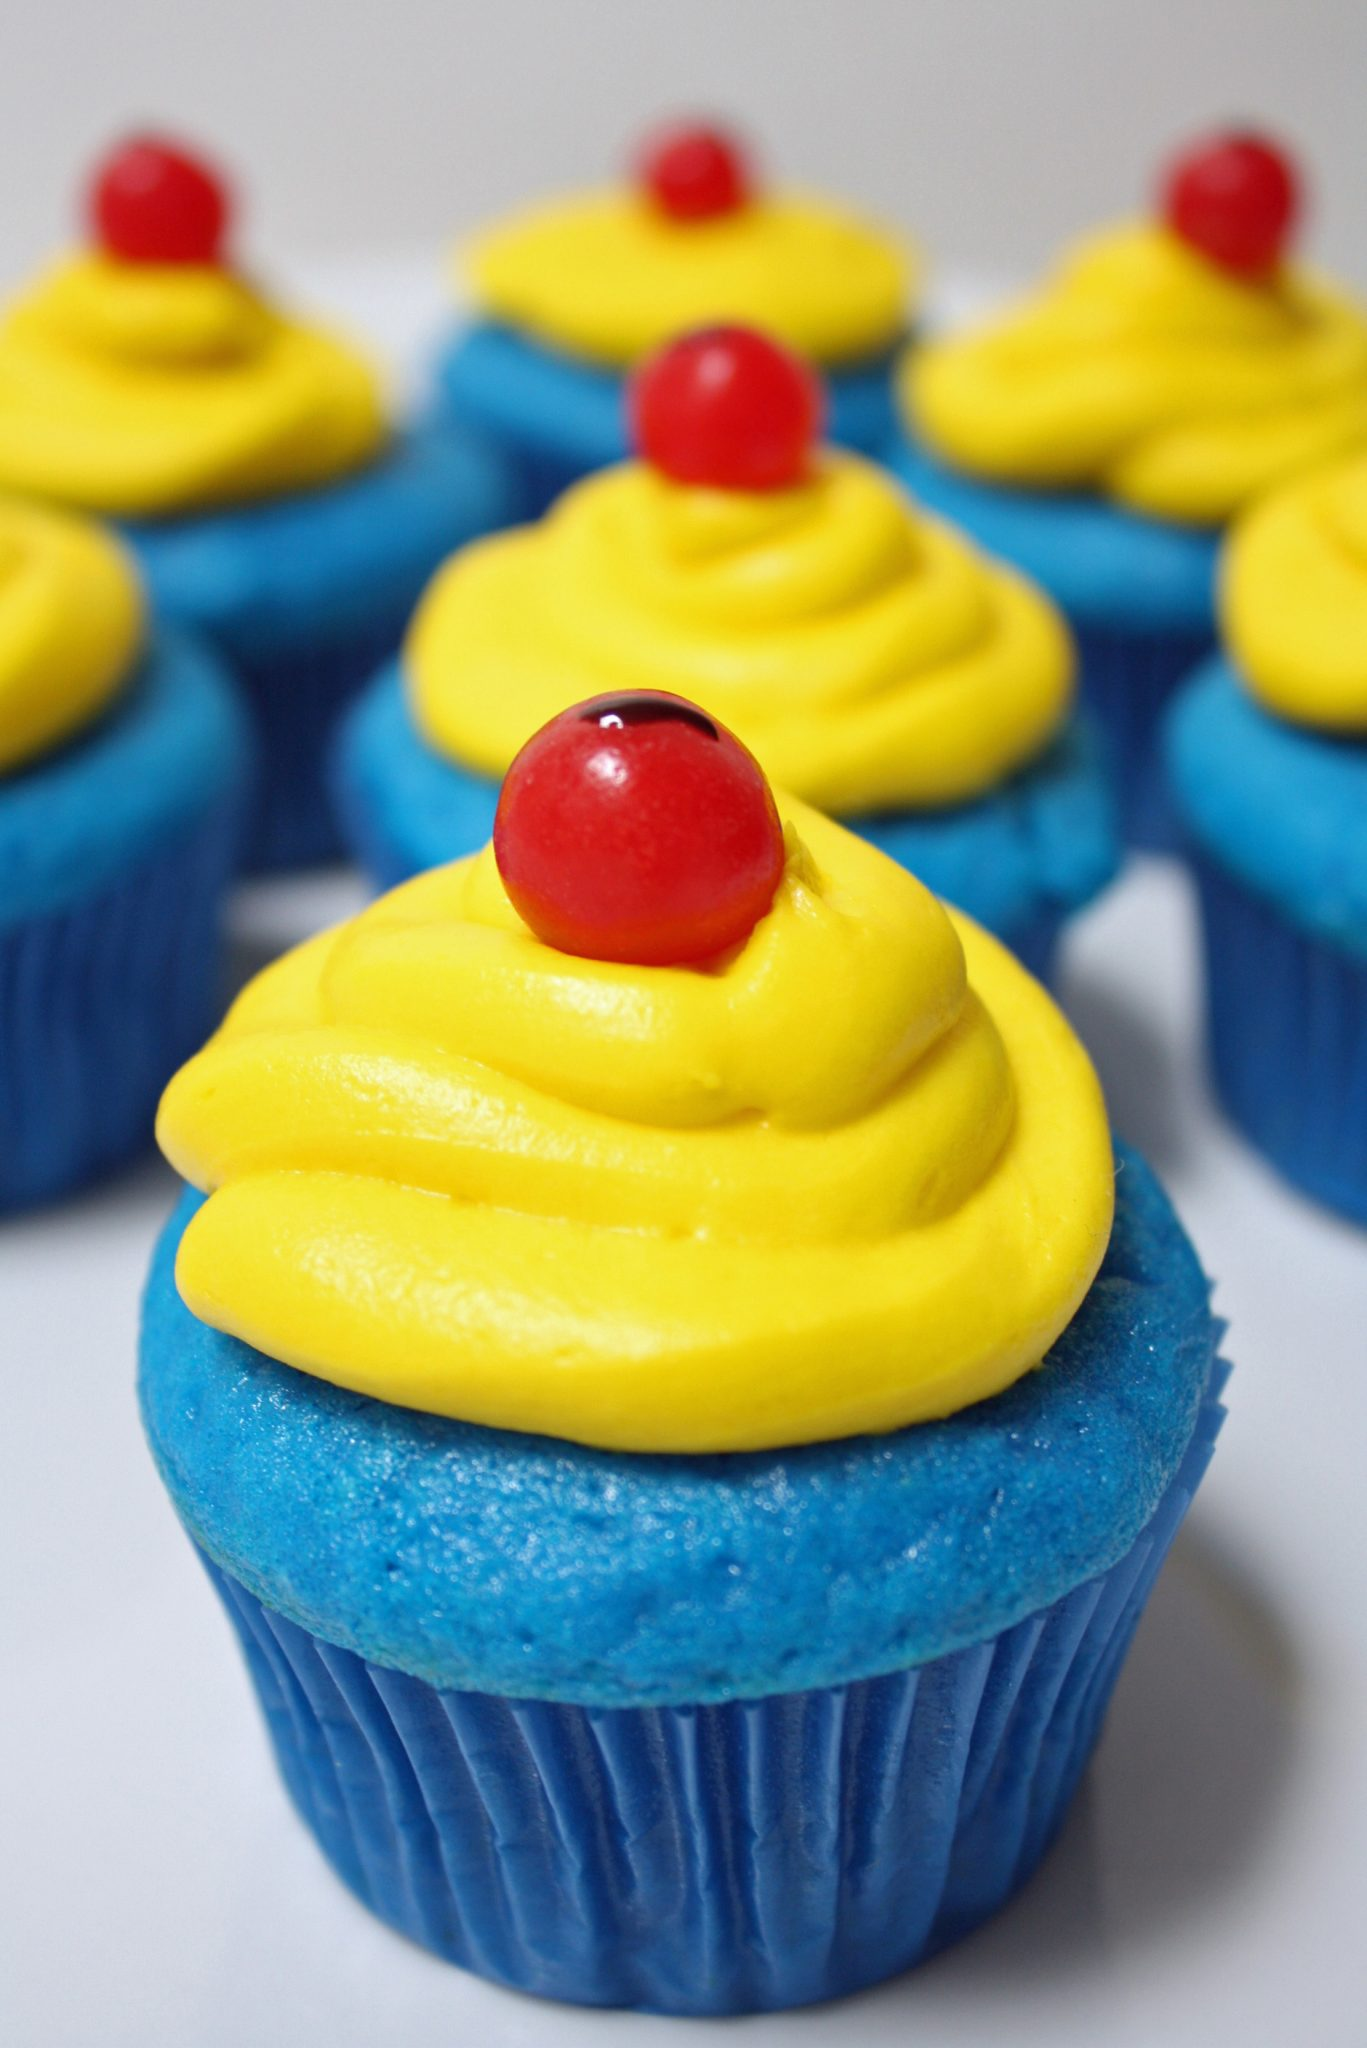 Disney Snow White Inspired Cupcakes